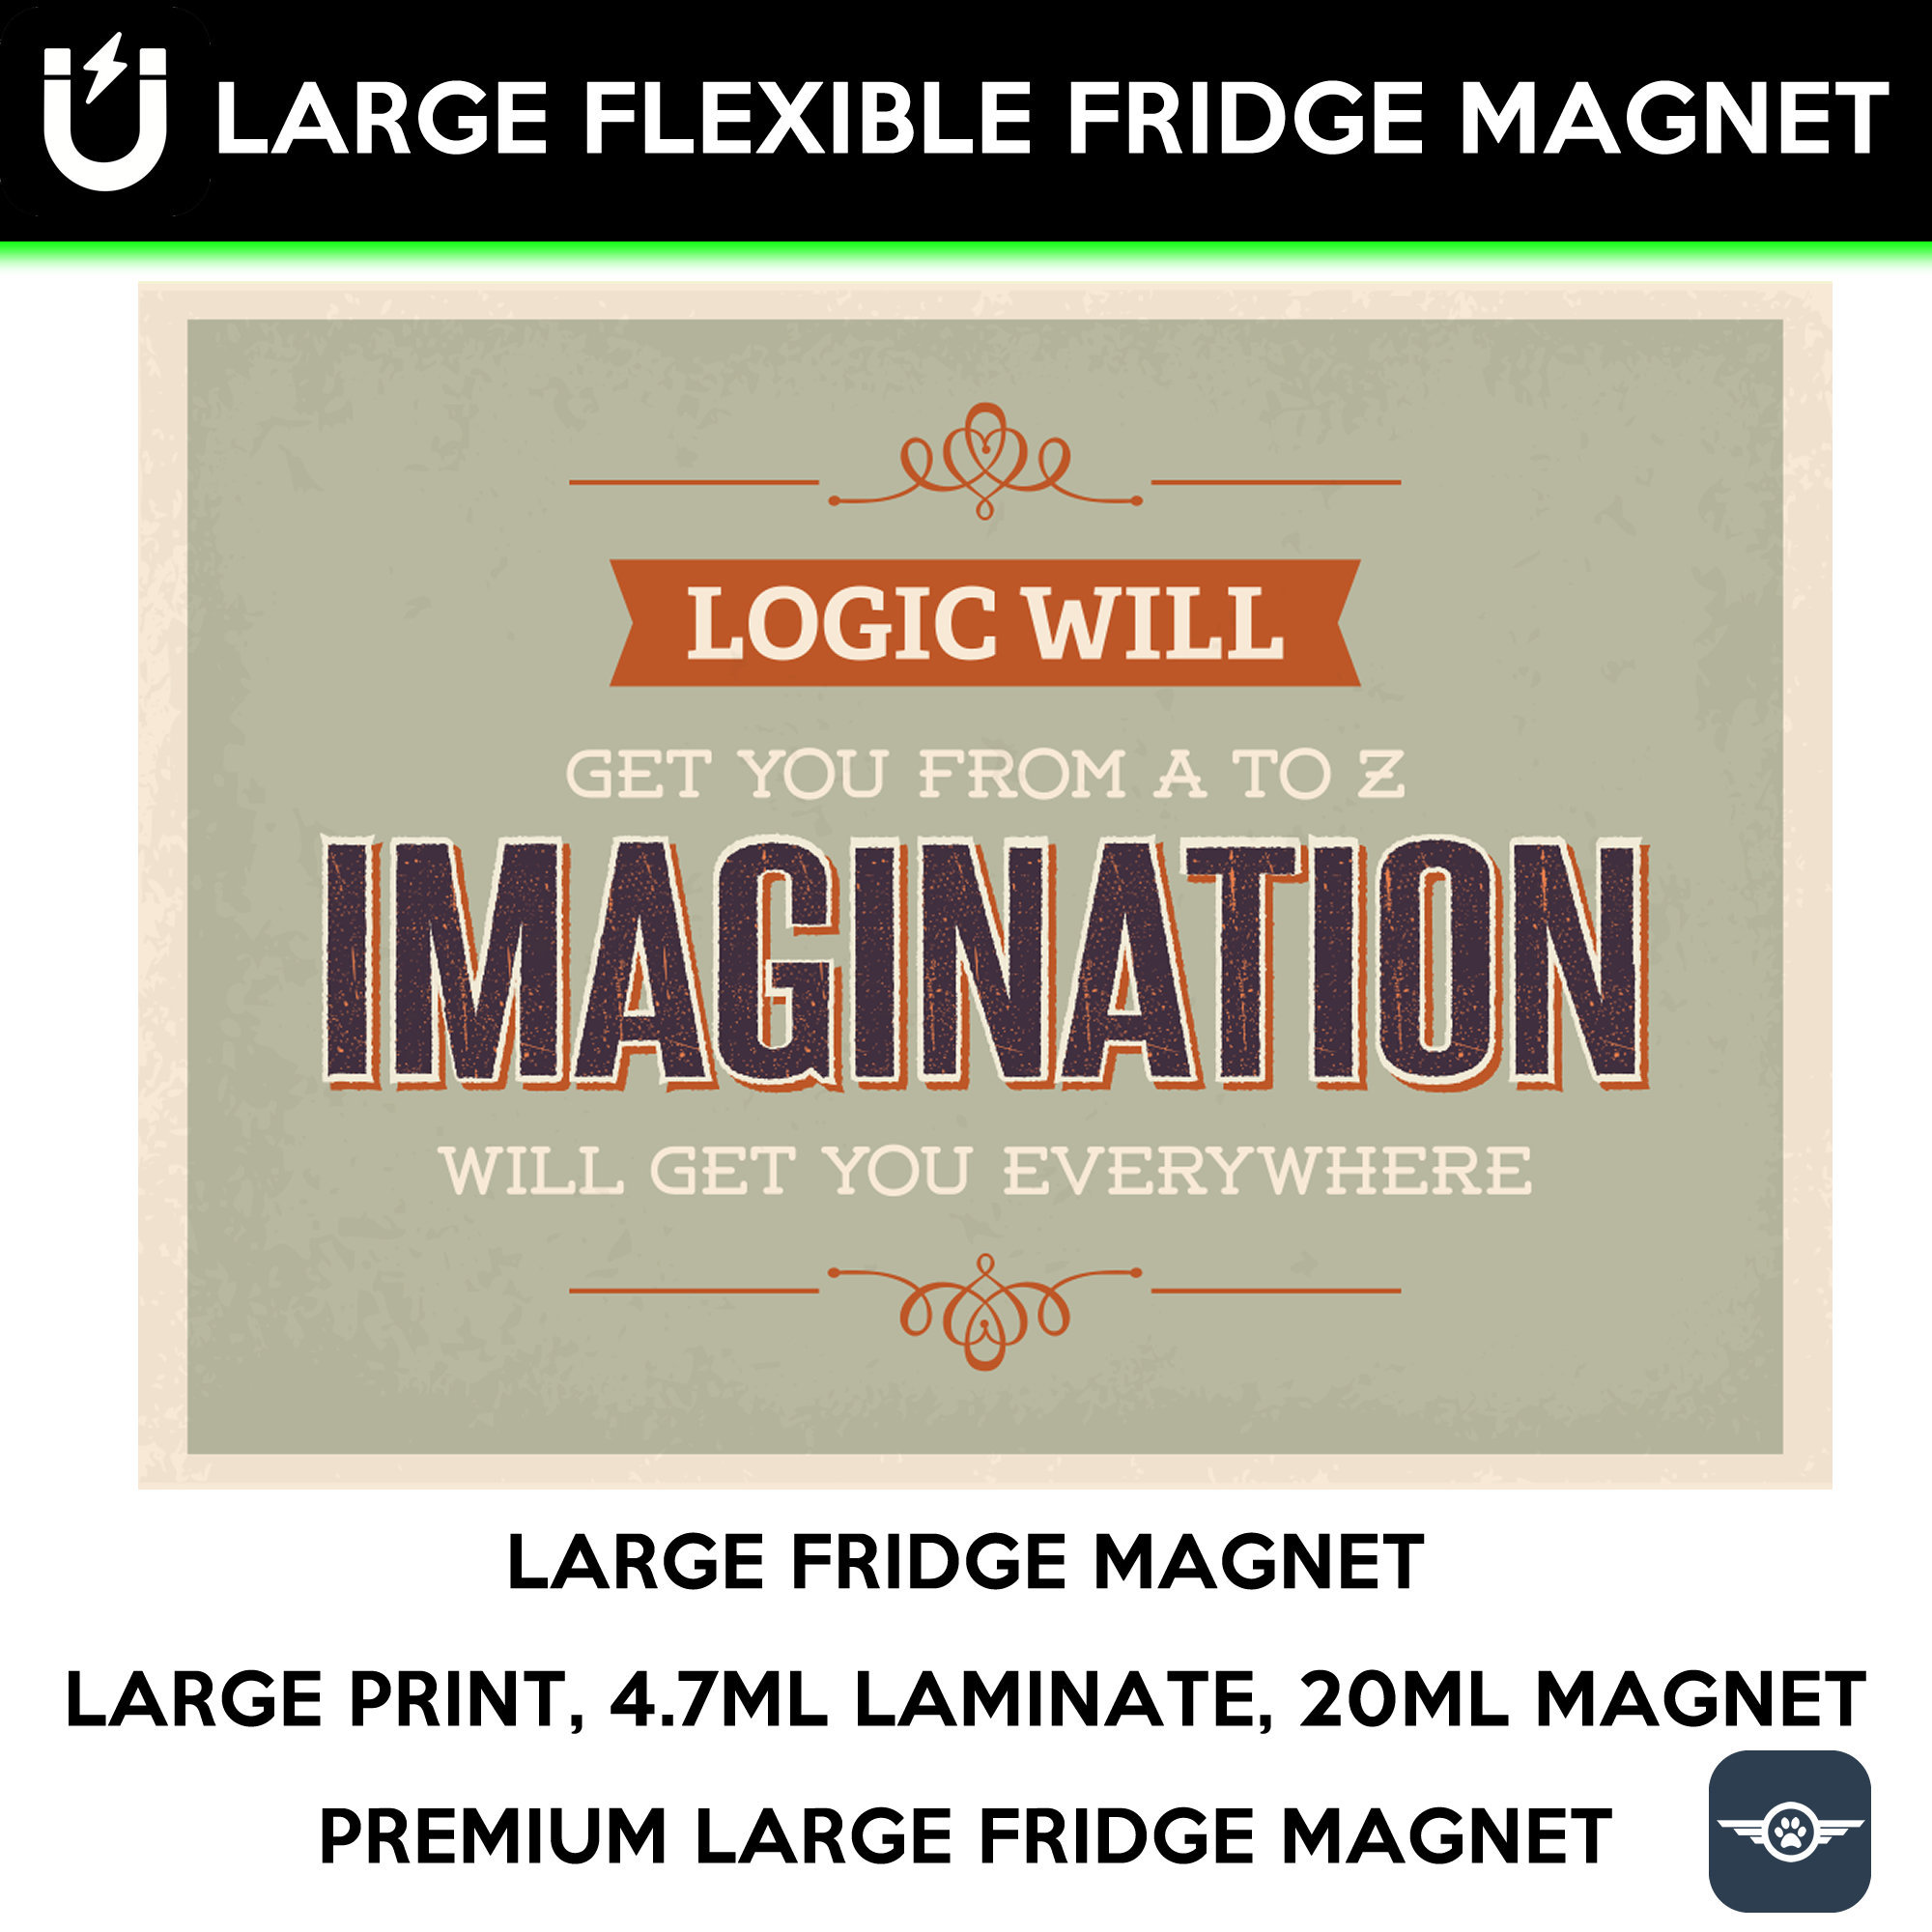 Logic will get you from a to z imagination will get you everywhere inspirational fridge magnet 6.5 inch x 9 inch premium large magnet